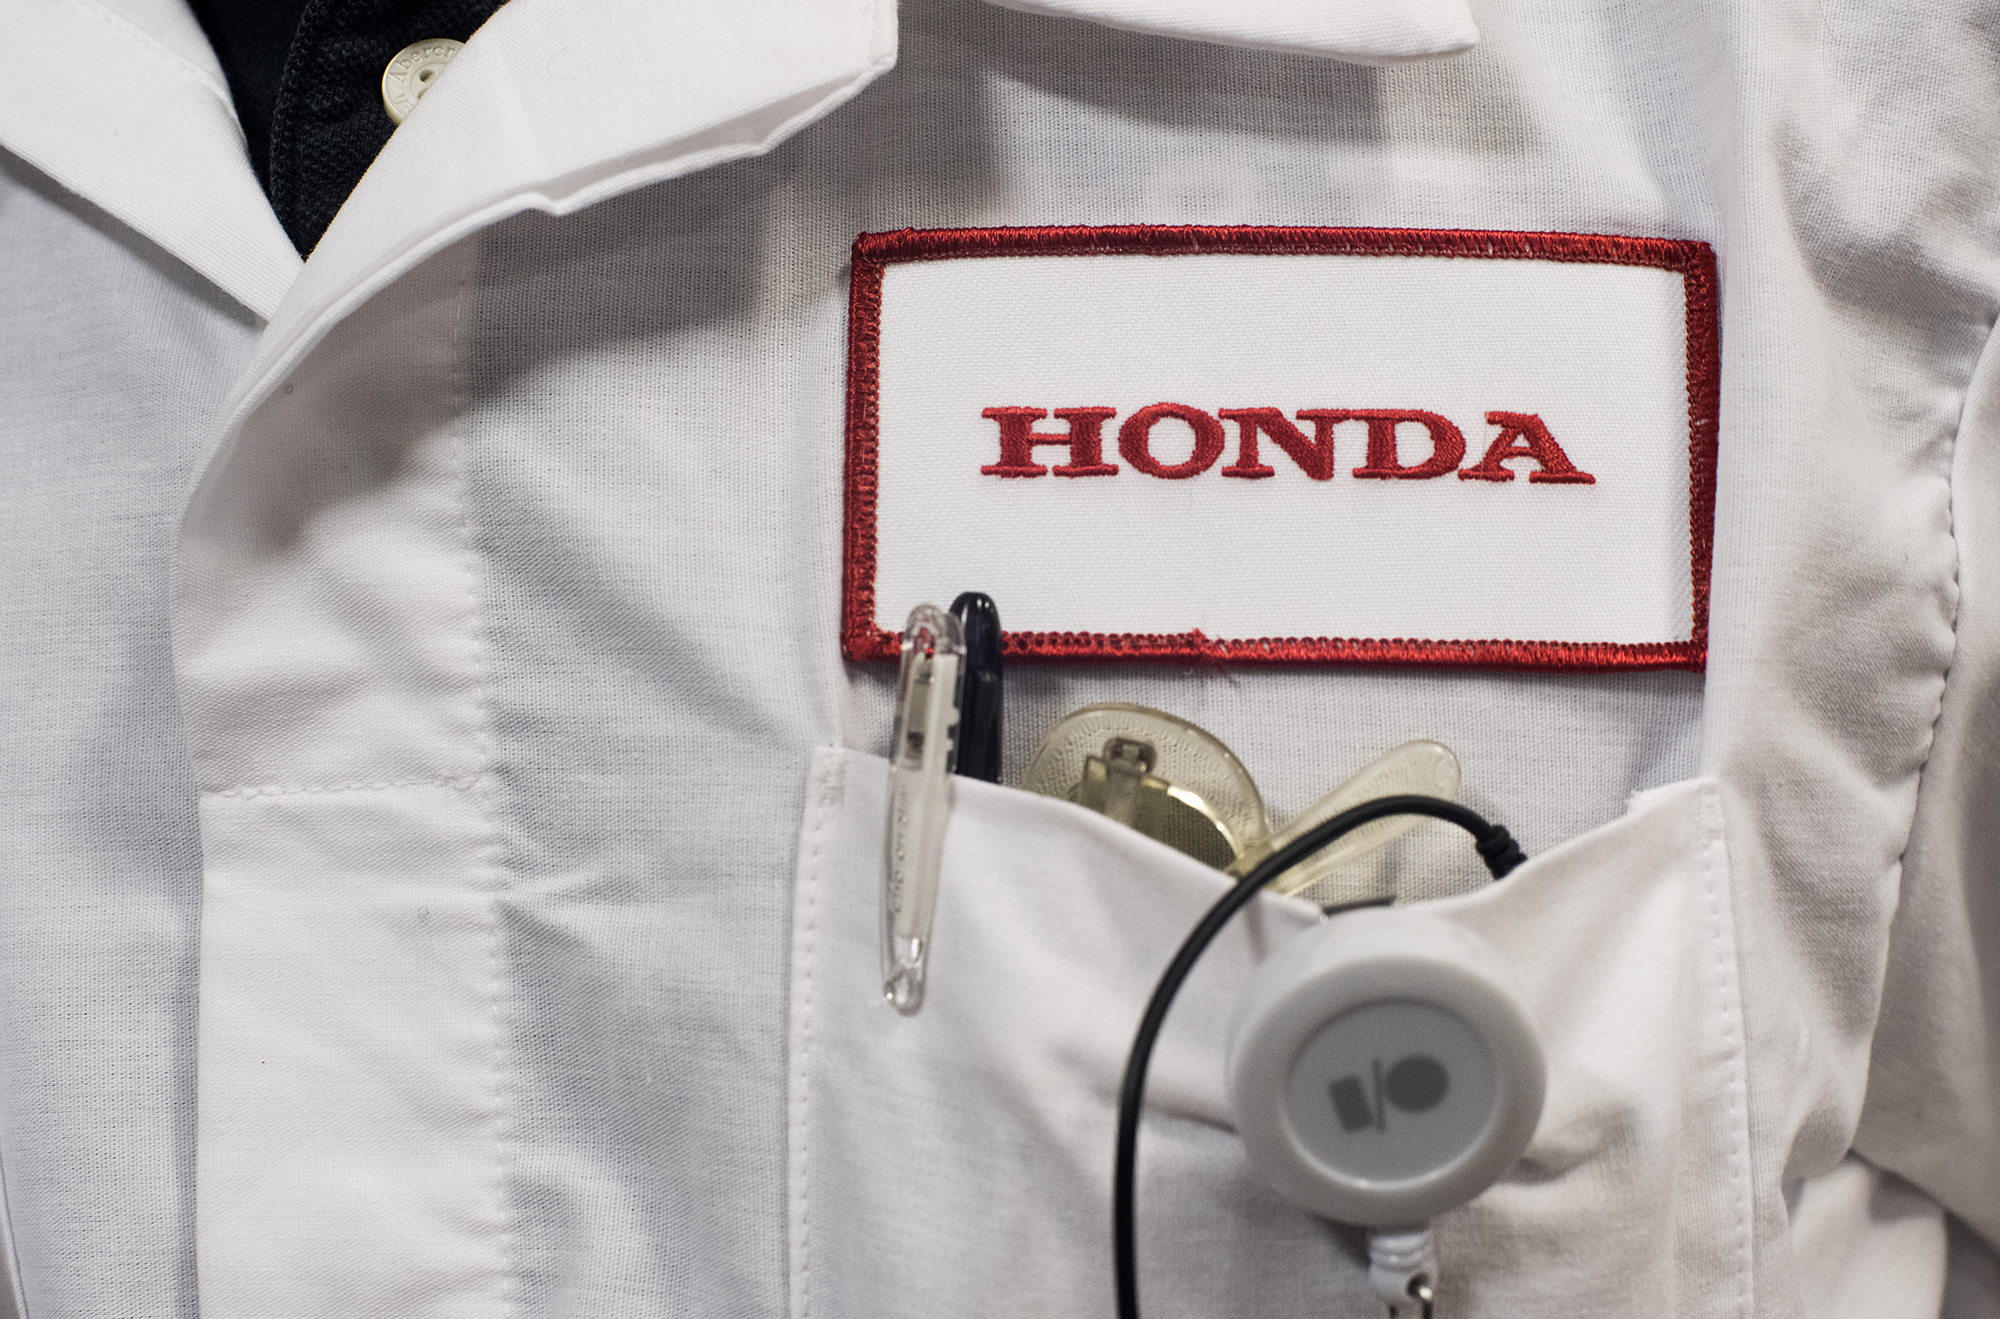 Honda is reportedly deploying accountants to the assembly line